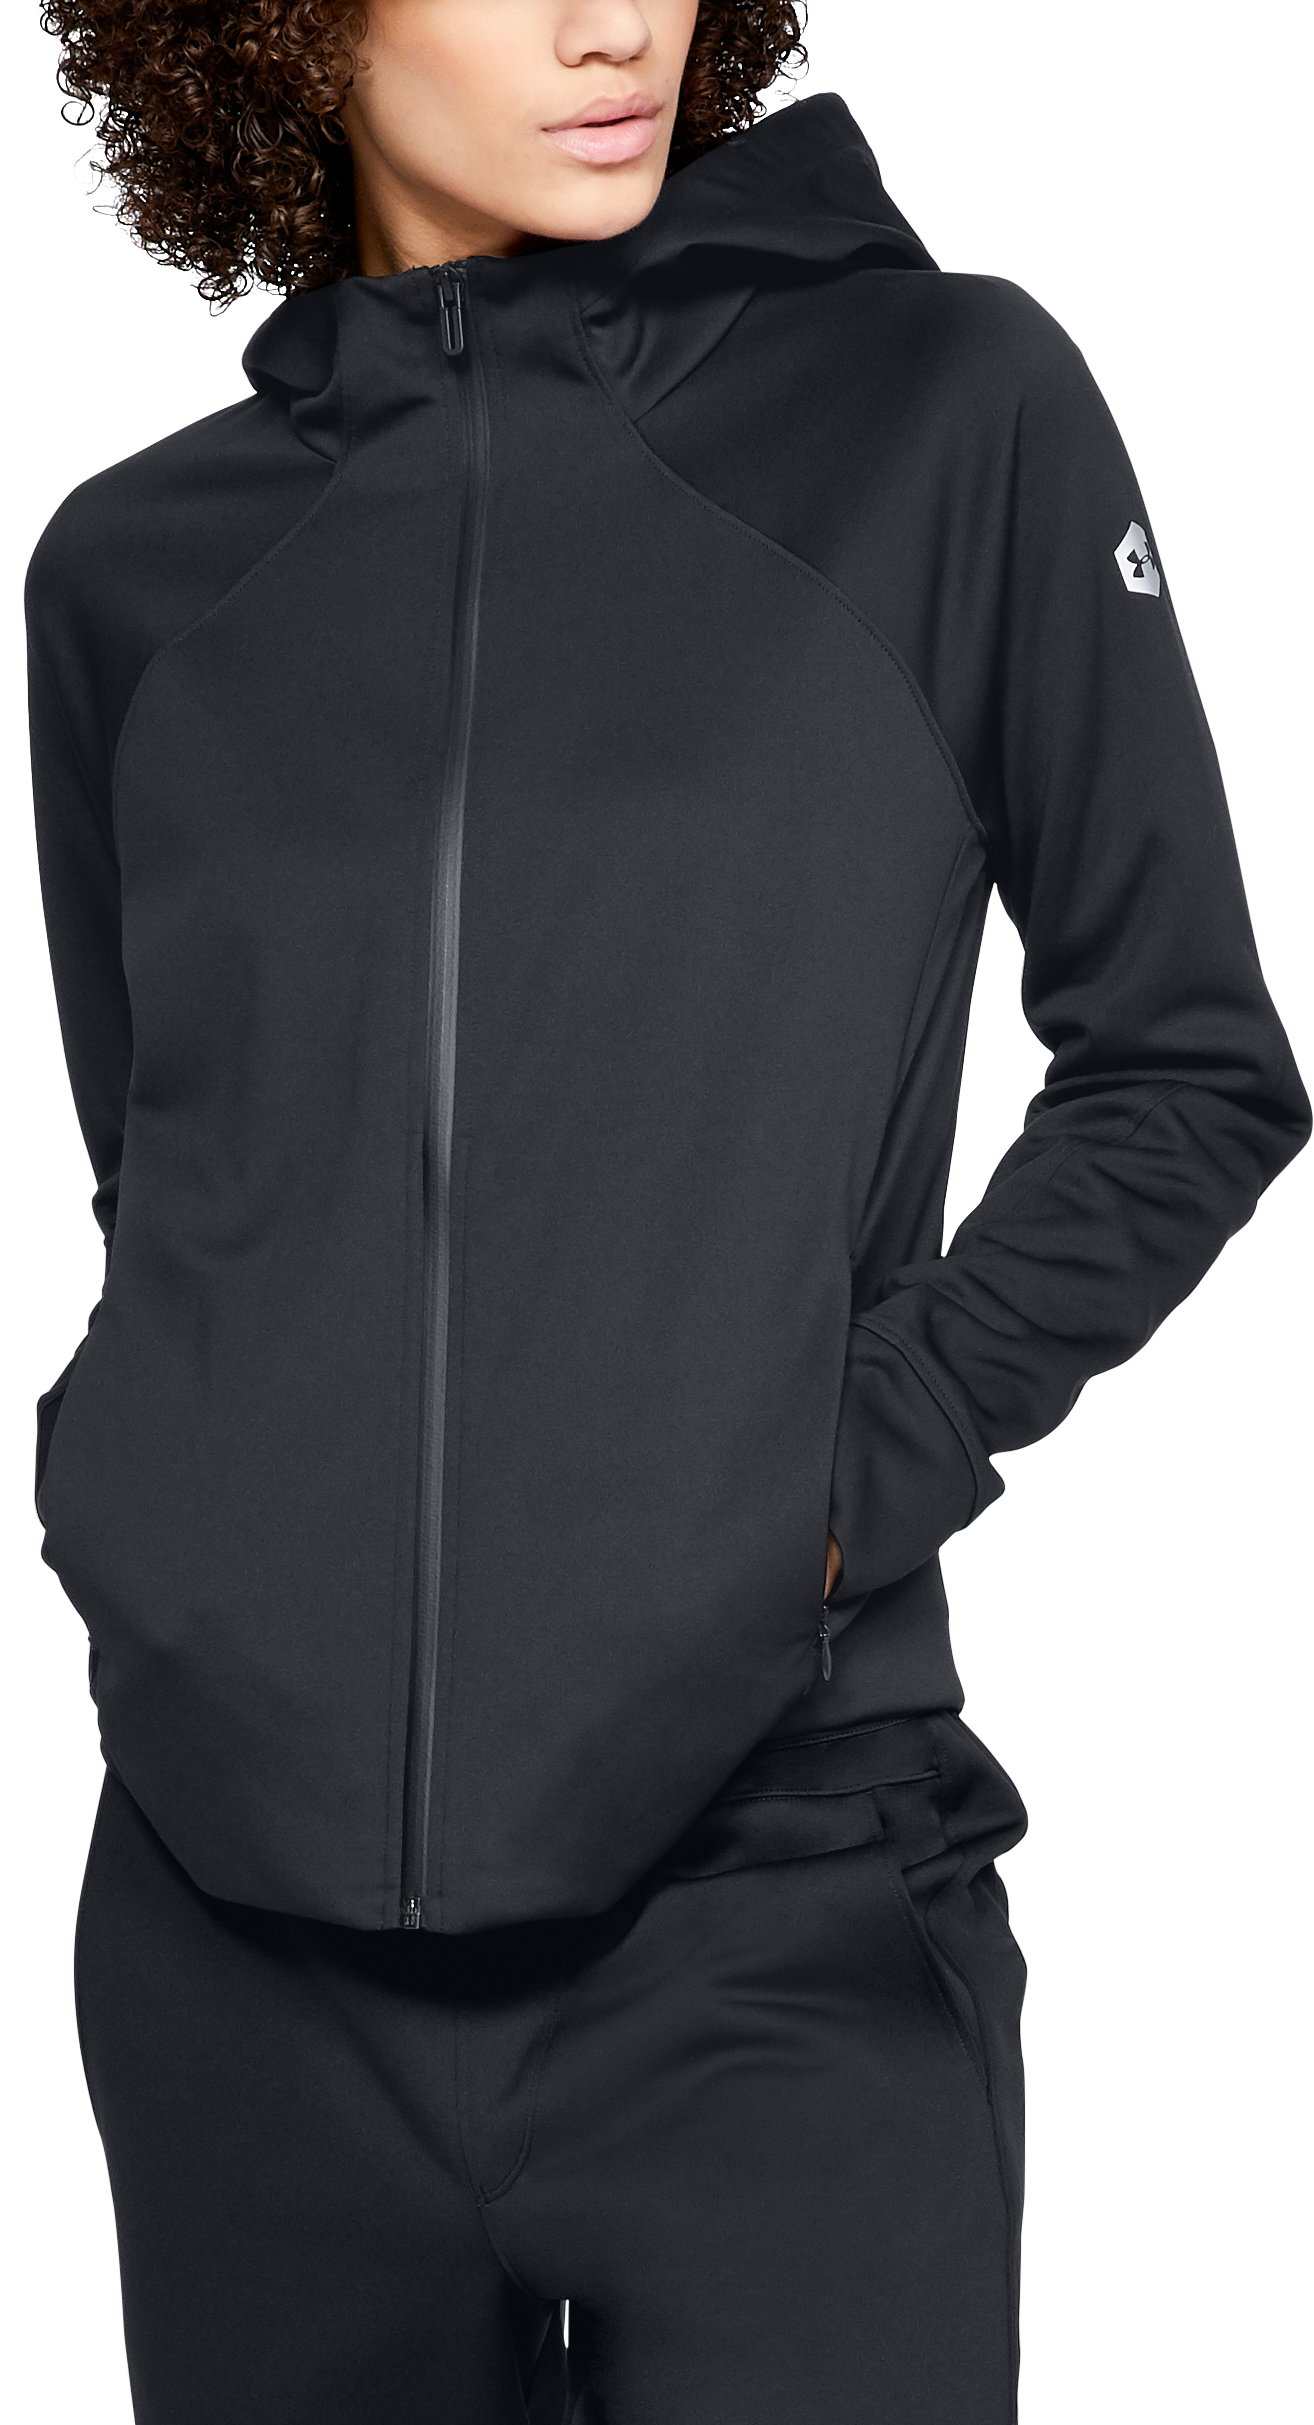 small jackets Women's Athlete Recovery Track Suit™ Jacket Secure, <strong>zip hand pockets</strong>.